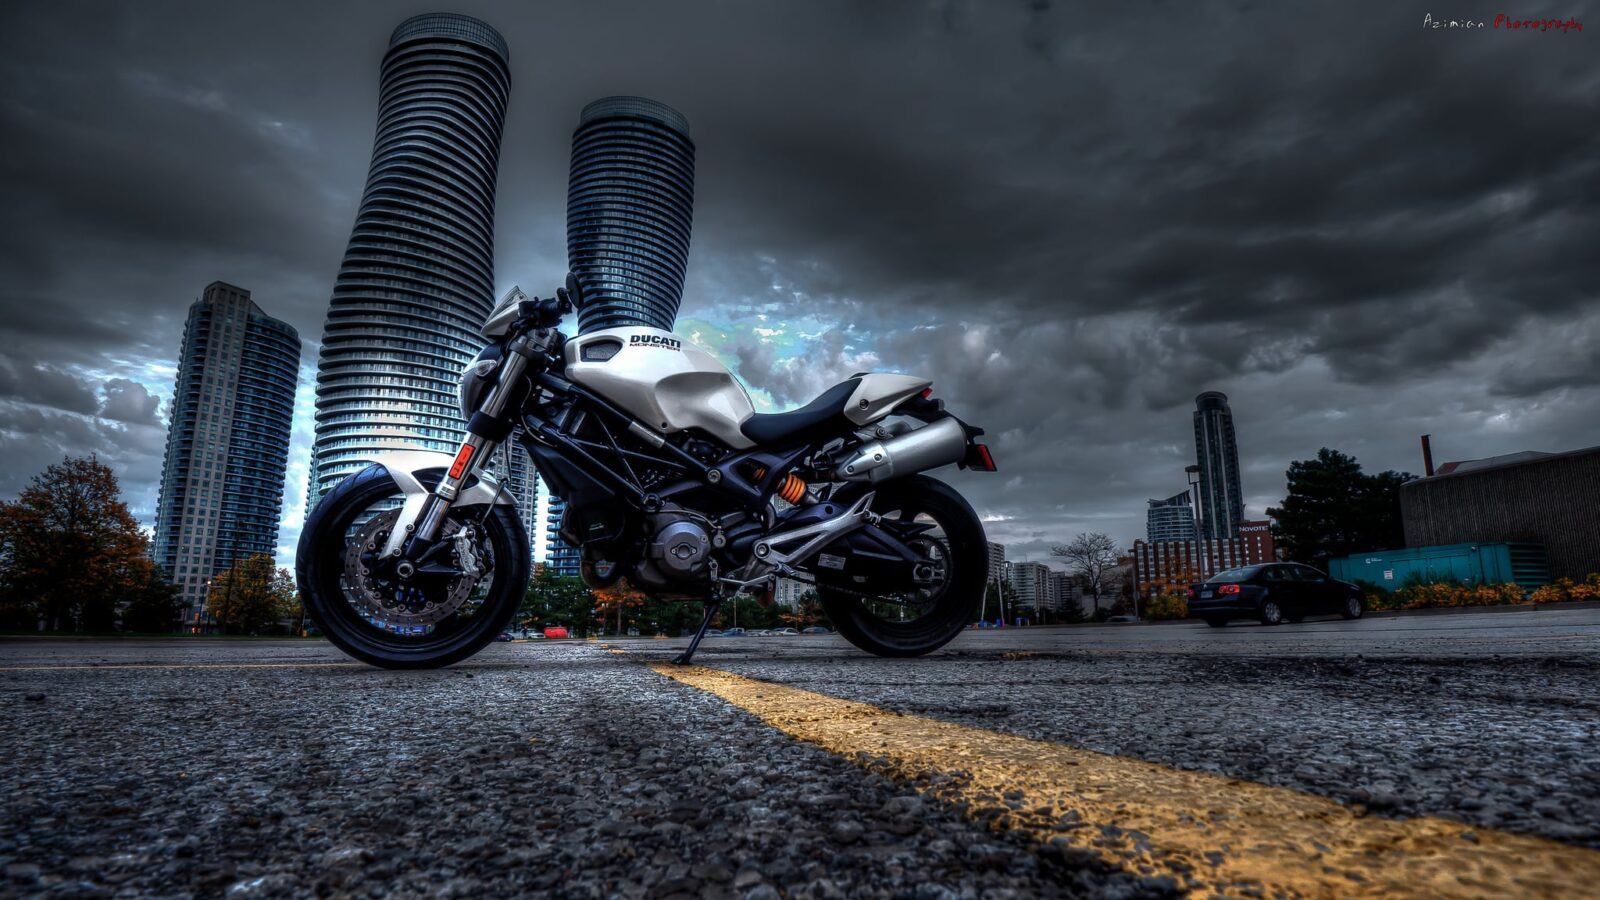 17  Ducati Monster 696 Wallpapers HD High Quality